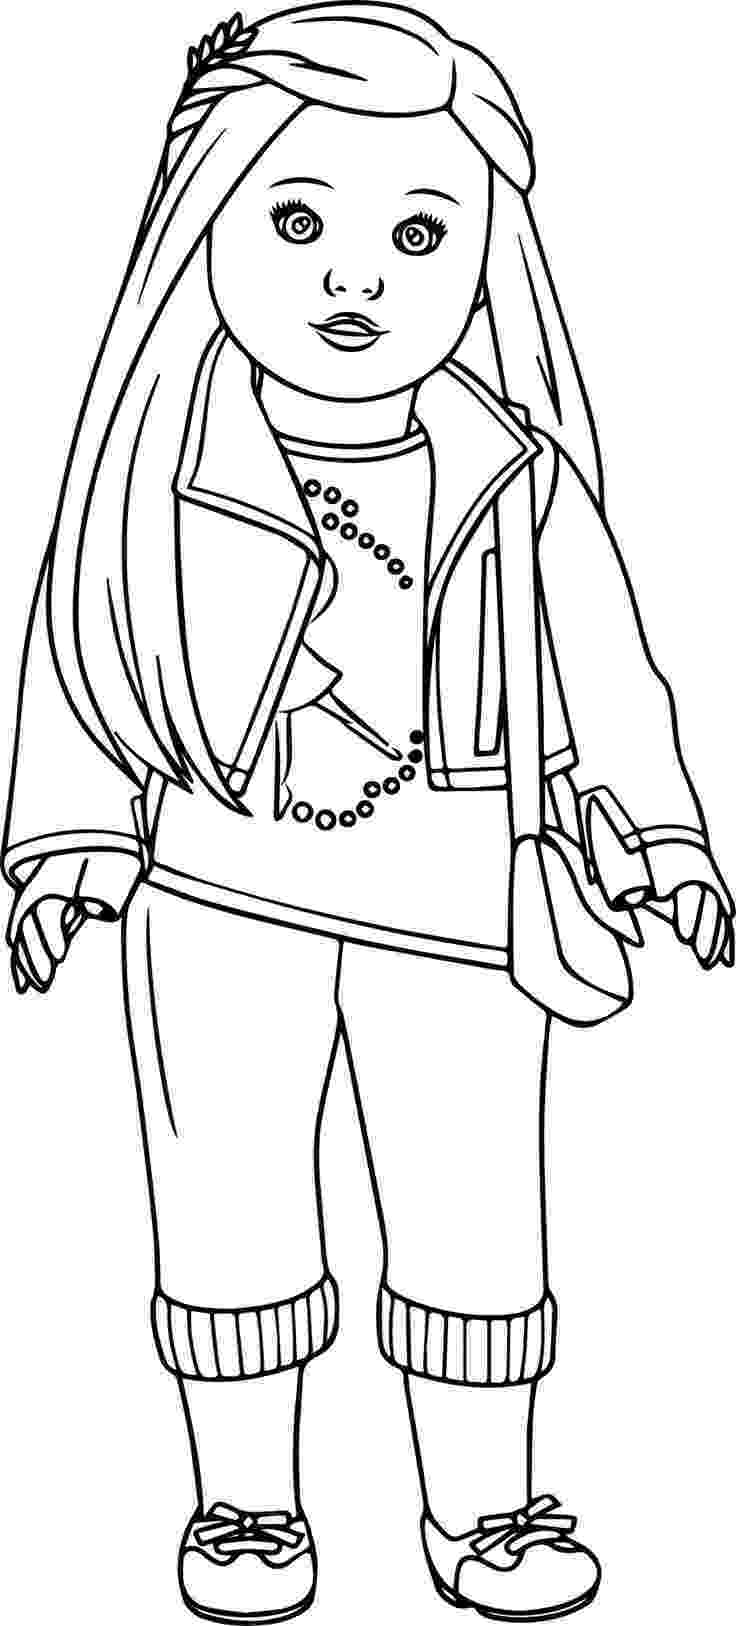 american girl doll pictures american doll coloring pages coloringsuite coloring doll girl american pictures